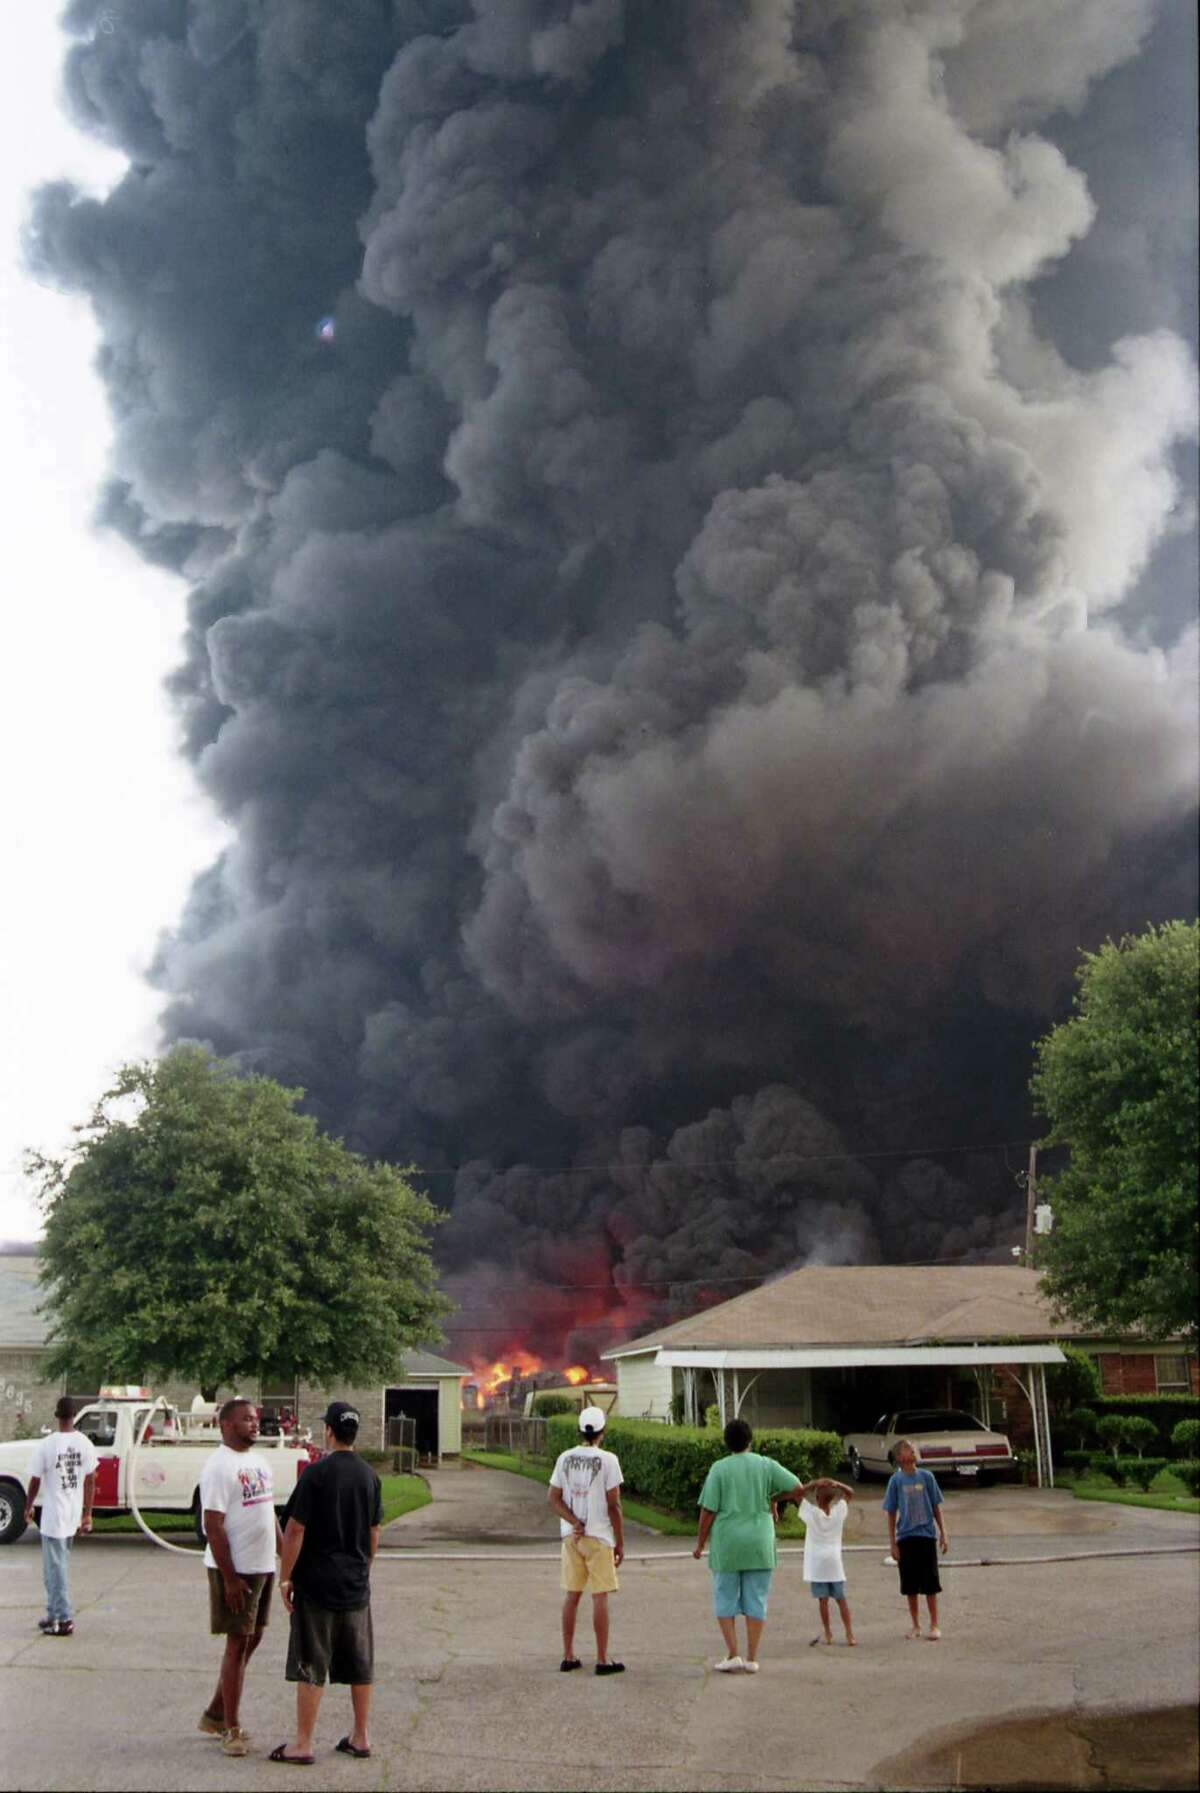 Thick, black smoke reached into the sky as the fire gutted the warehouse complex.